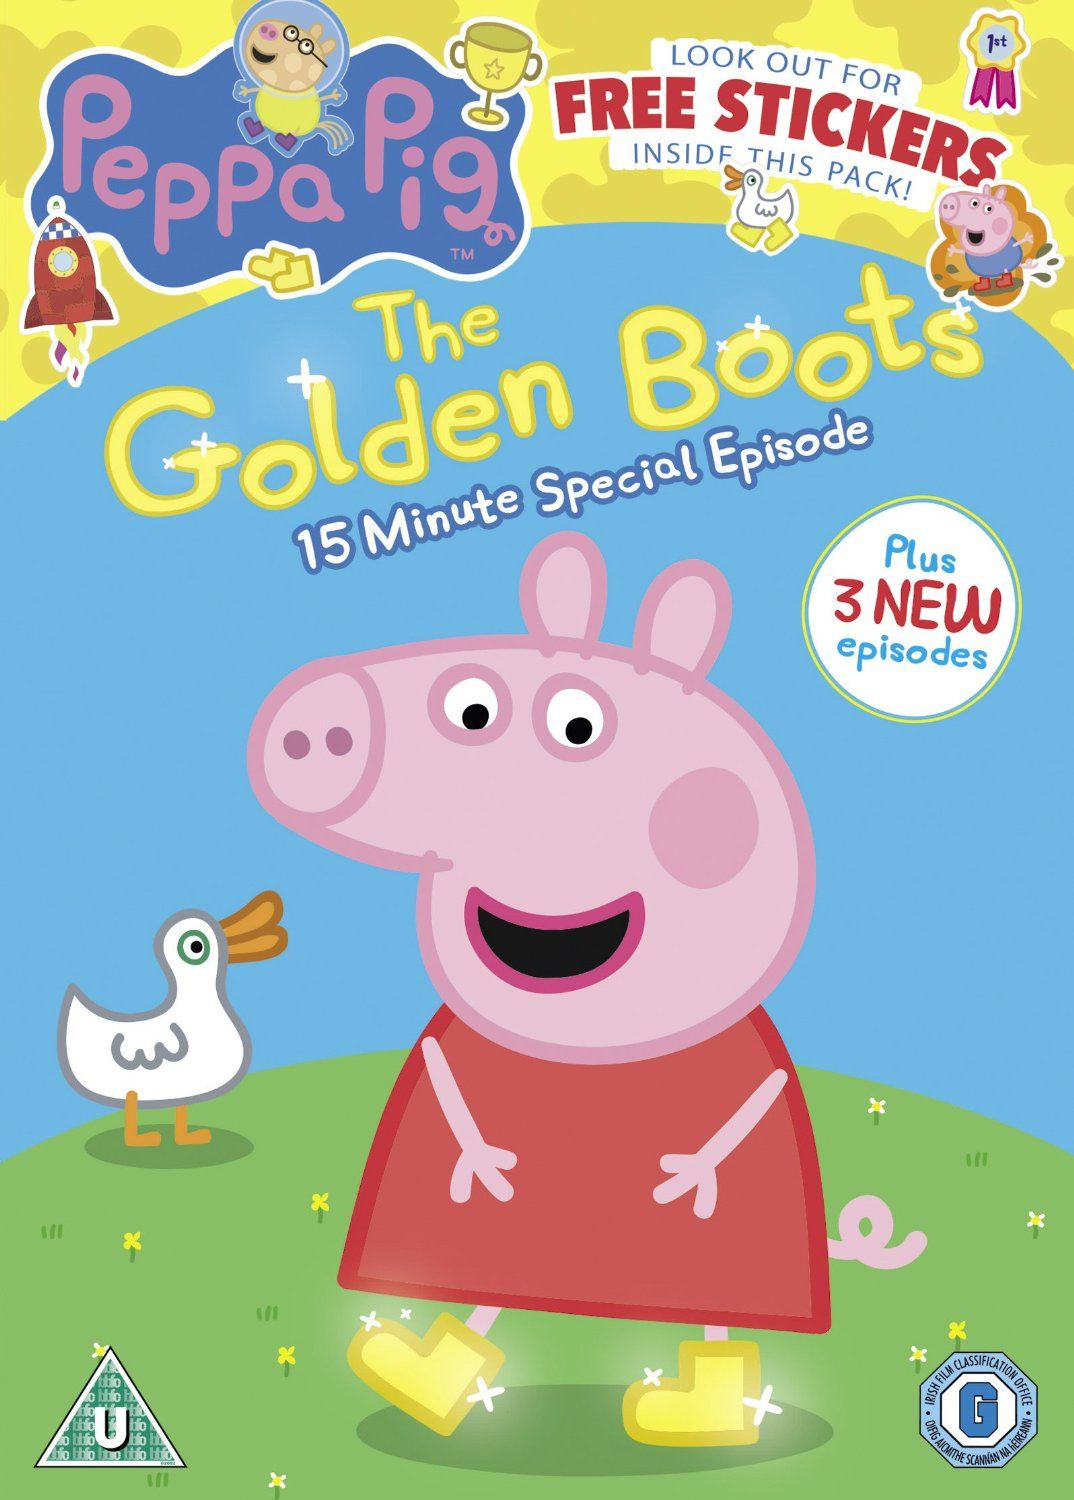 Peppa Pig The Golden Boots Will Be Released On Dvd On Monday 20th